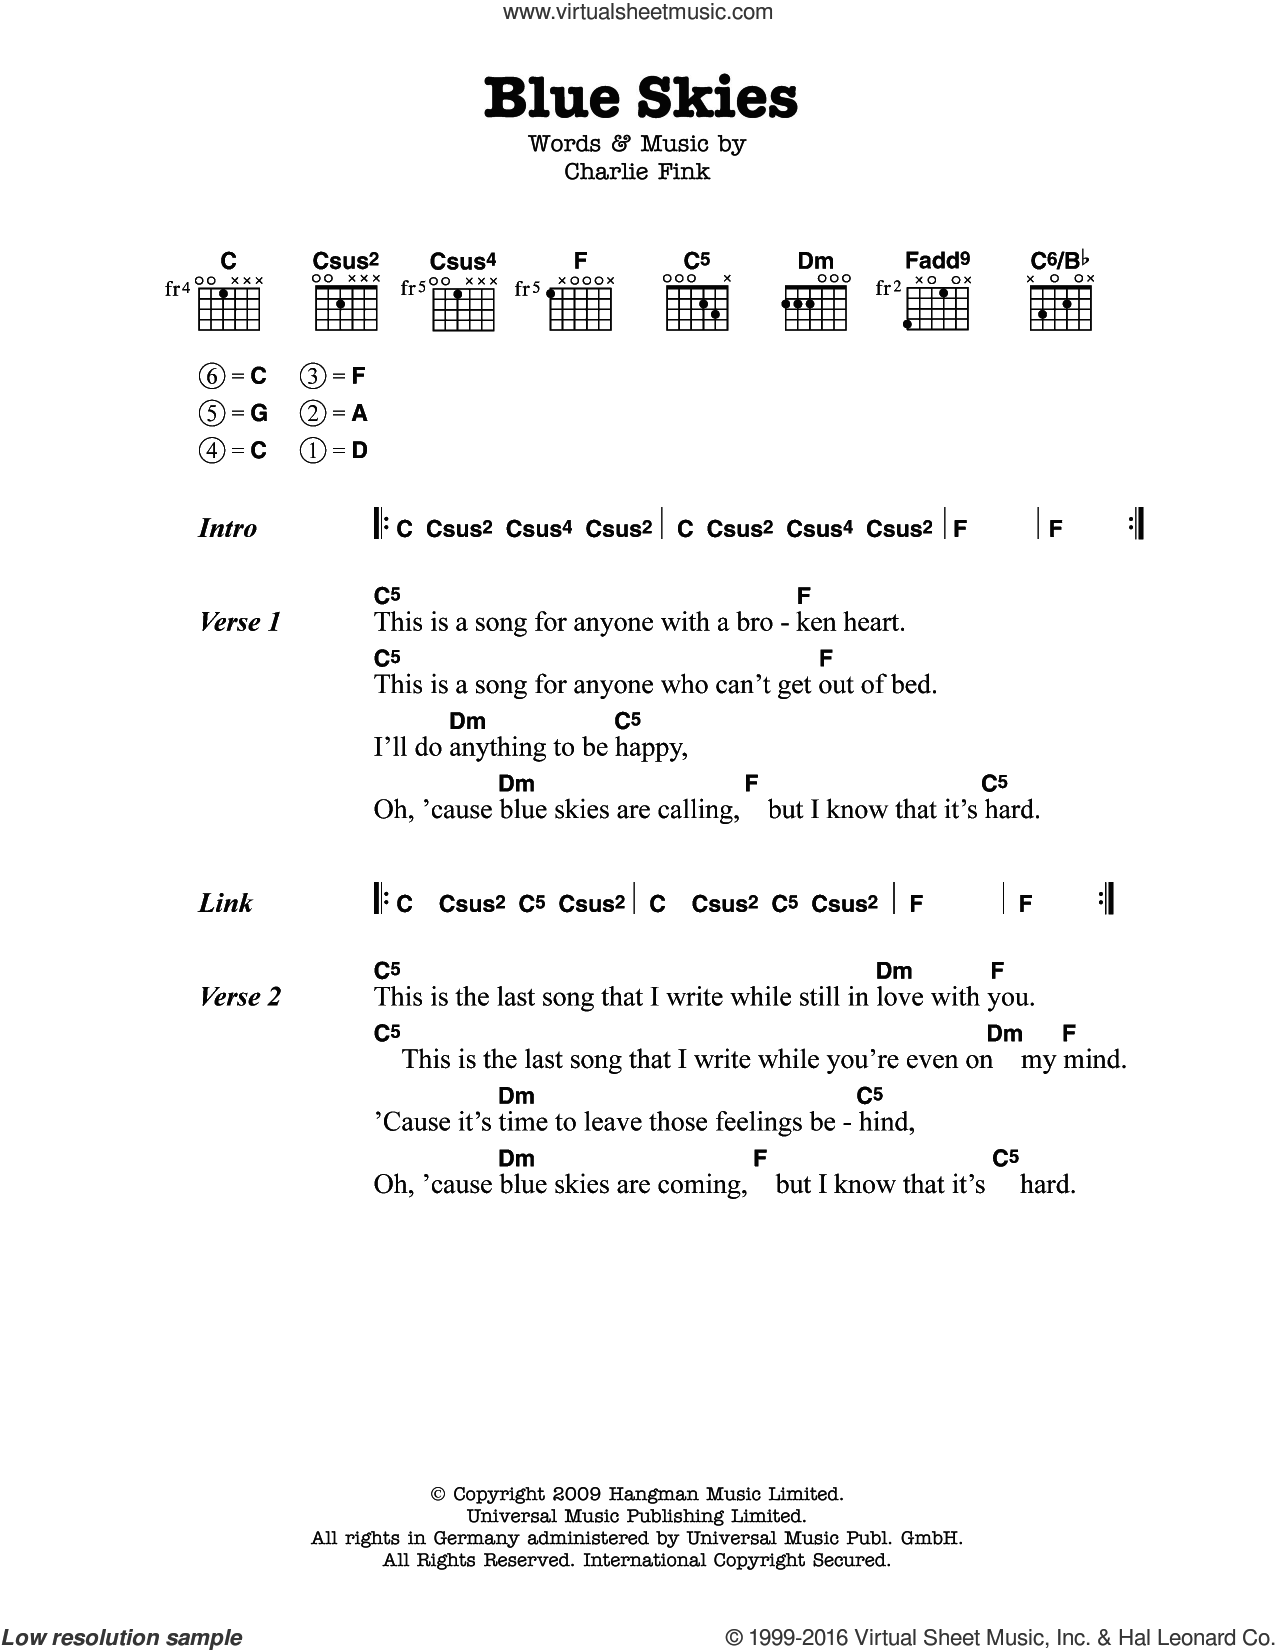 Heart of worship guitar chords images guitar chords examples csus2 guitar chord choice image guitar chords examples whale blue skies sheet music for guitar chords hexwebz Choice Image